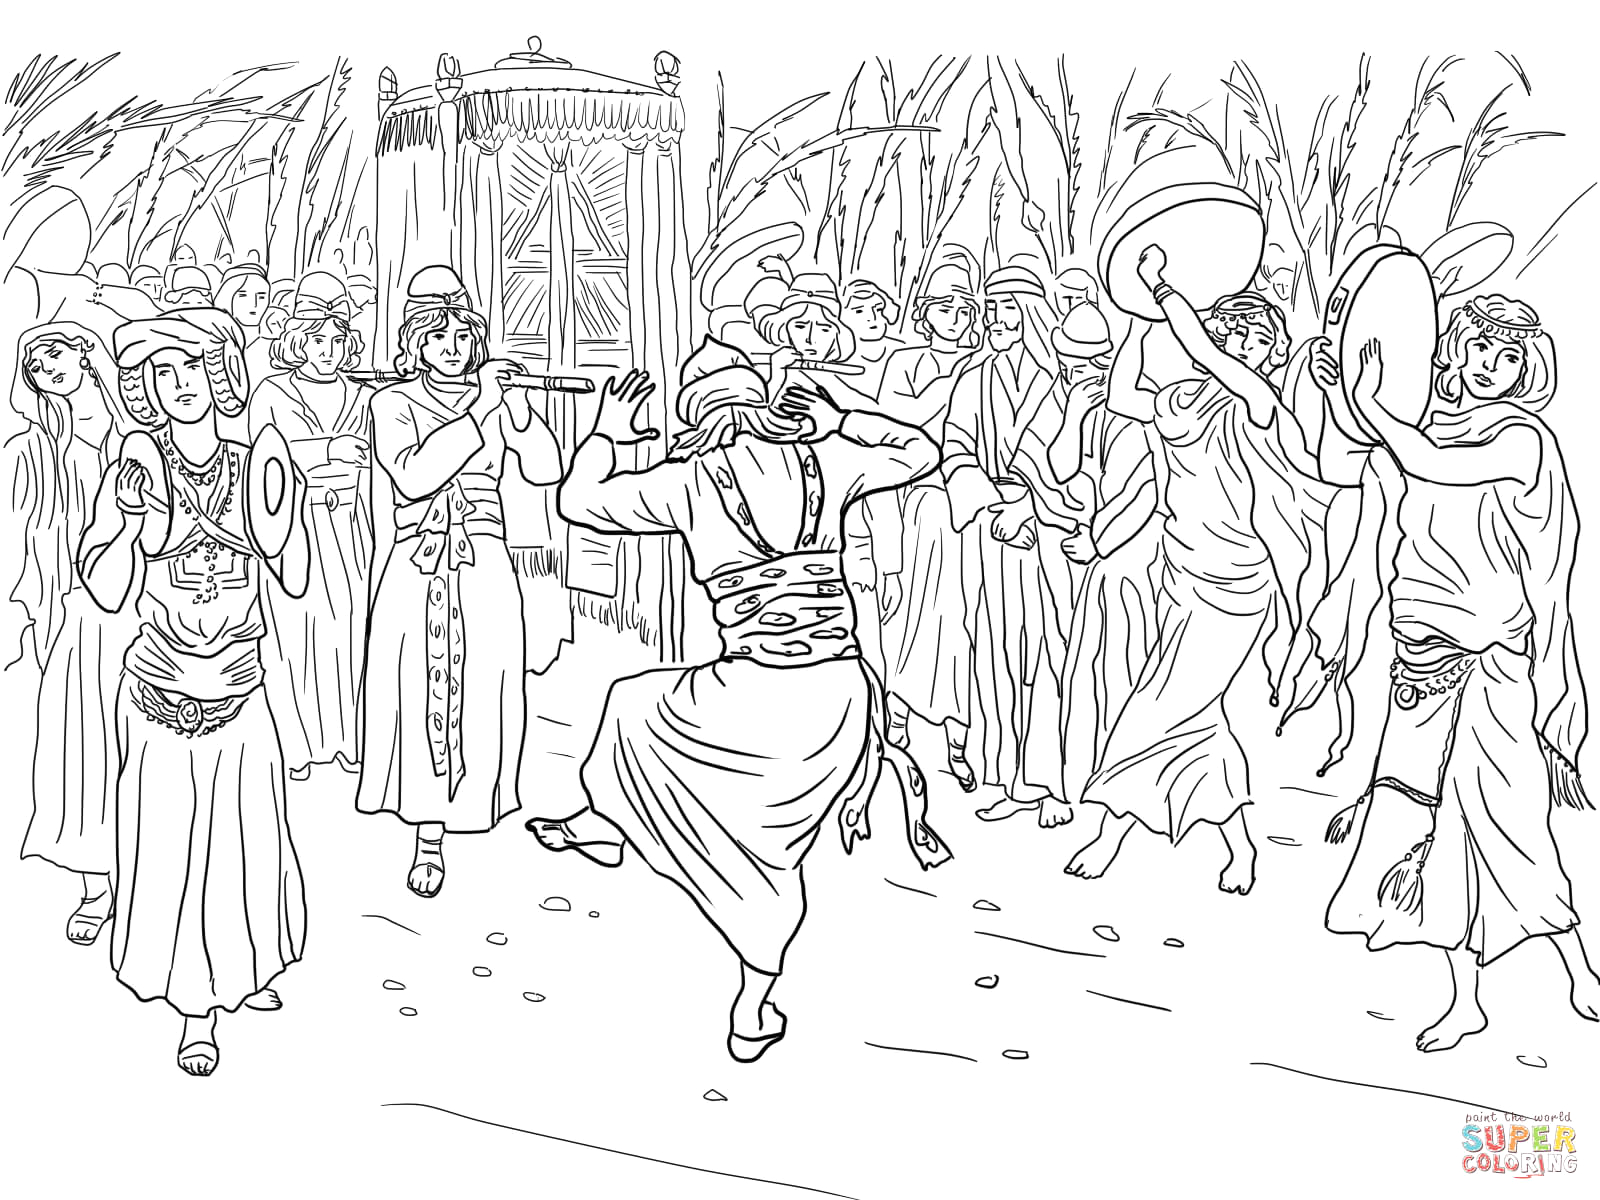 King David Danced before the Lord Coloring Page King David Dancing before the Ark Of the Covenant Coloring